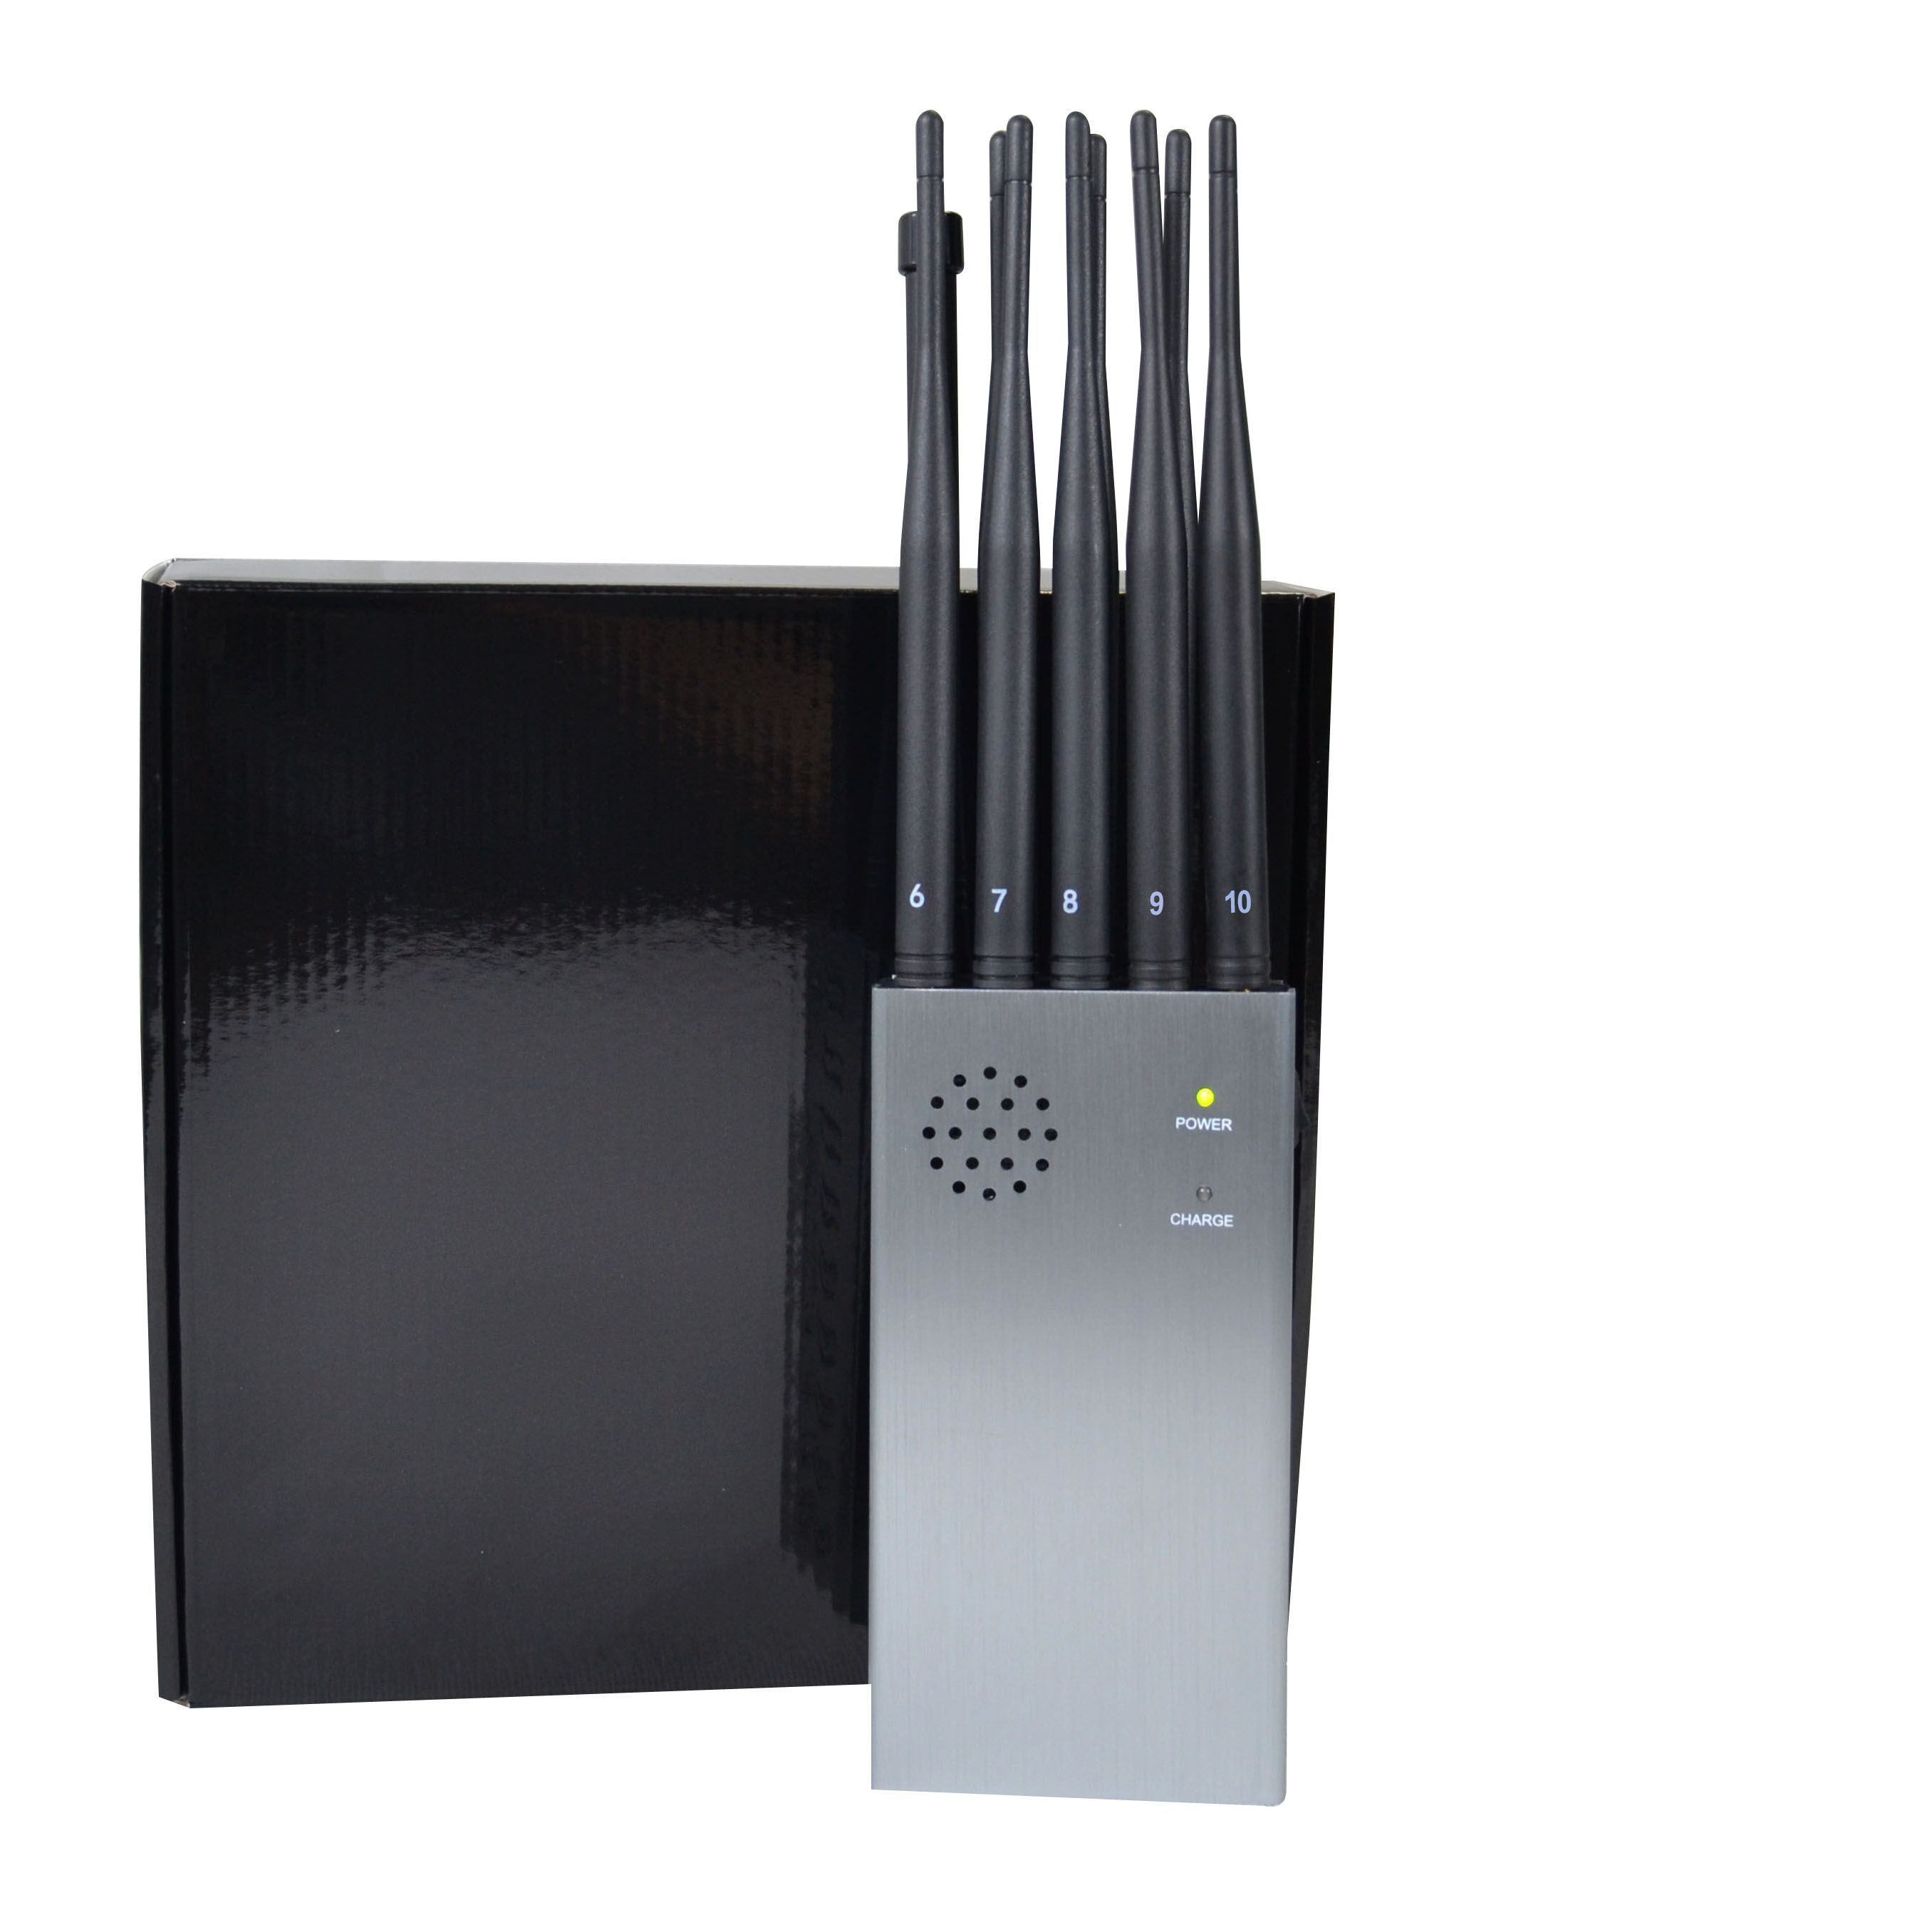 signal jammer Tweed Heads - China King Jammer with Portable 10 Antennas Including 2g 3G 5g 4G WiFi, GPS Remote Control Lojack Signals - China 8000mA Battery Jammer, Large Volume Power Signal Blocker